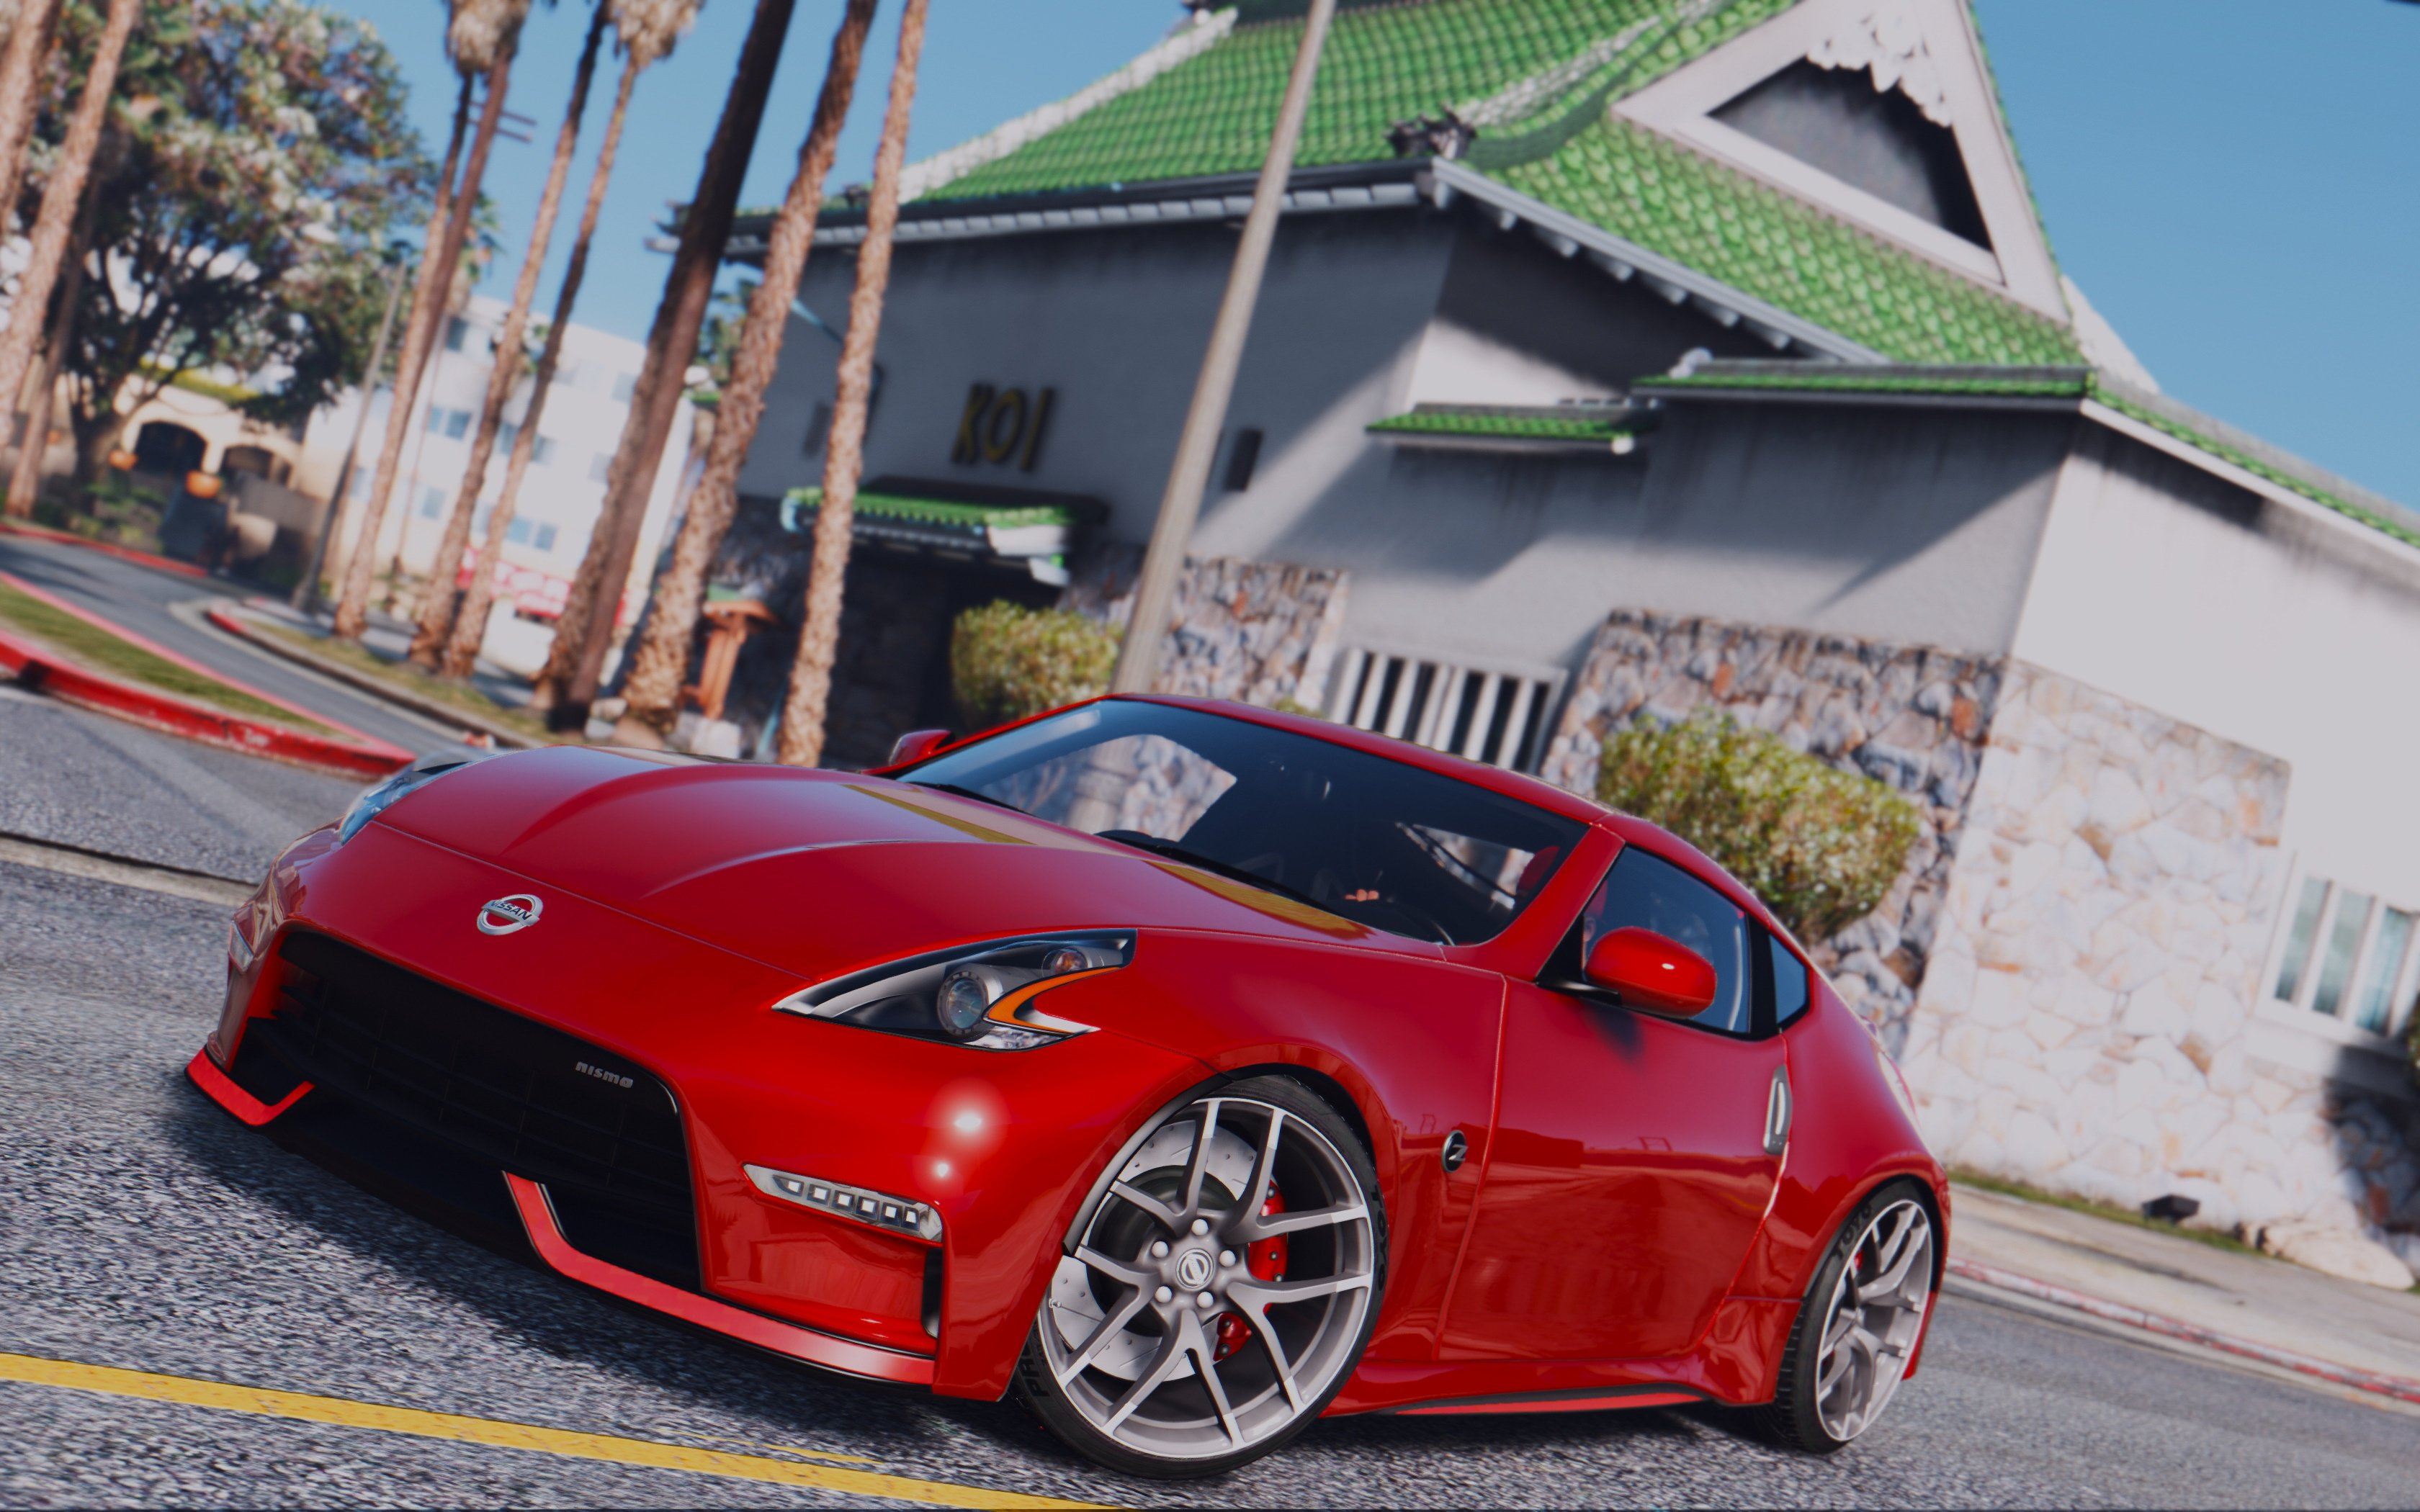 Nissan 370Z Nismo Z34 2016 v1.0 for GTA 5